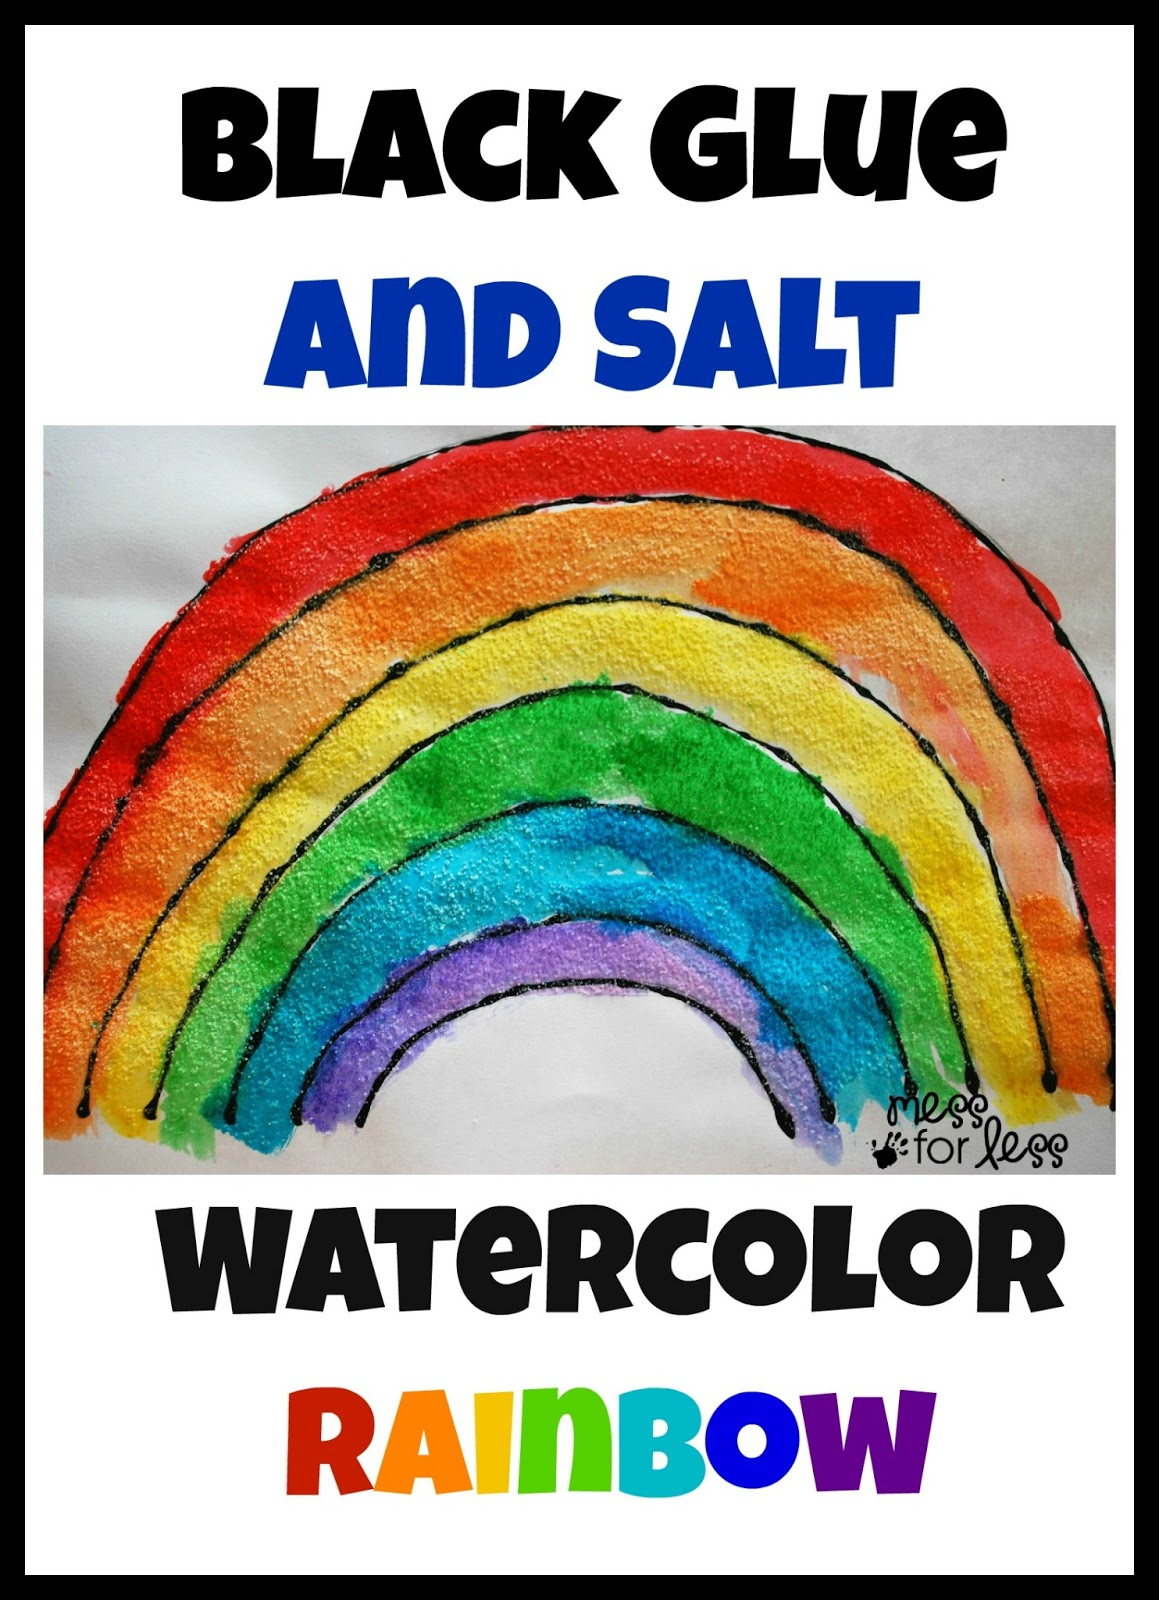 Rainbow Craft Black Glue And Salt Watercolor Rainbow